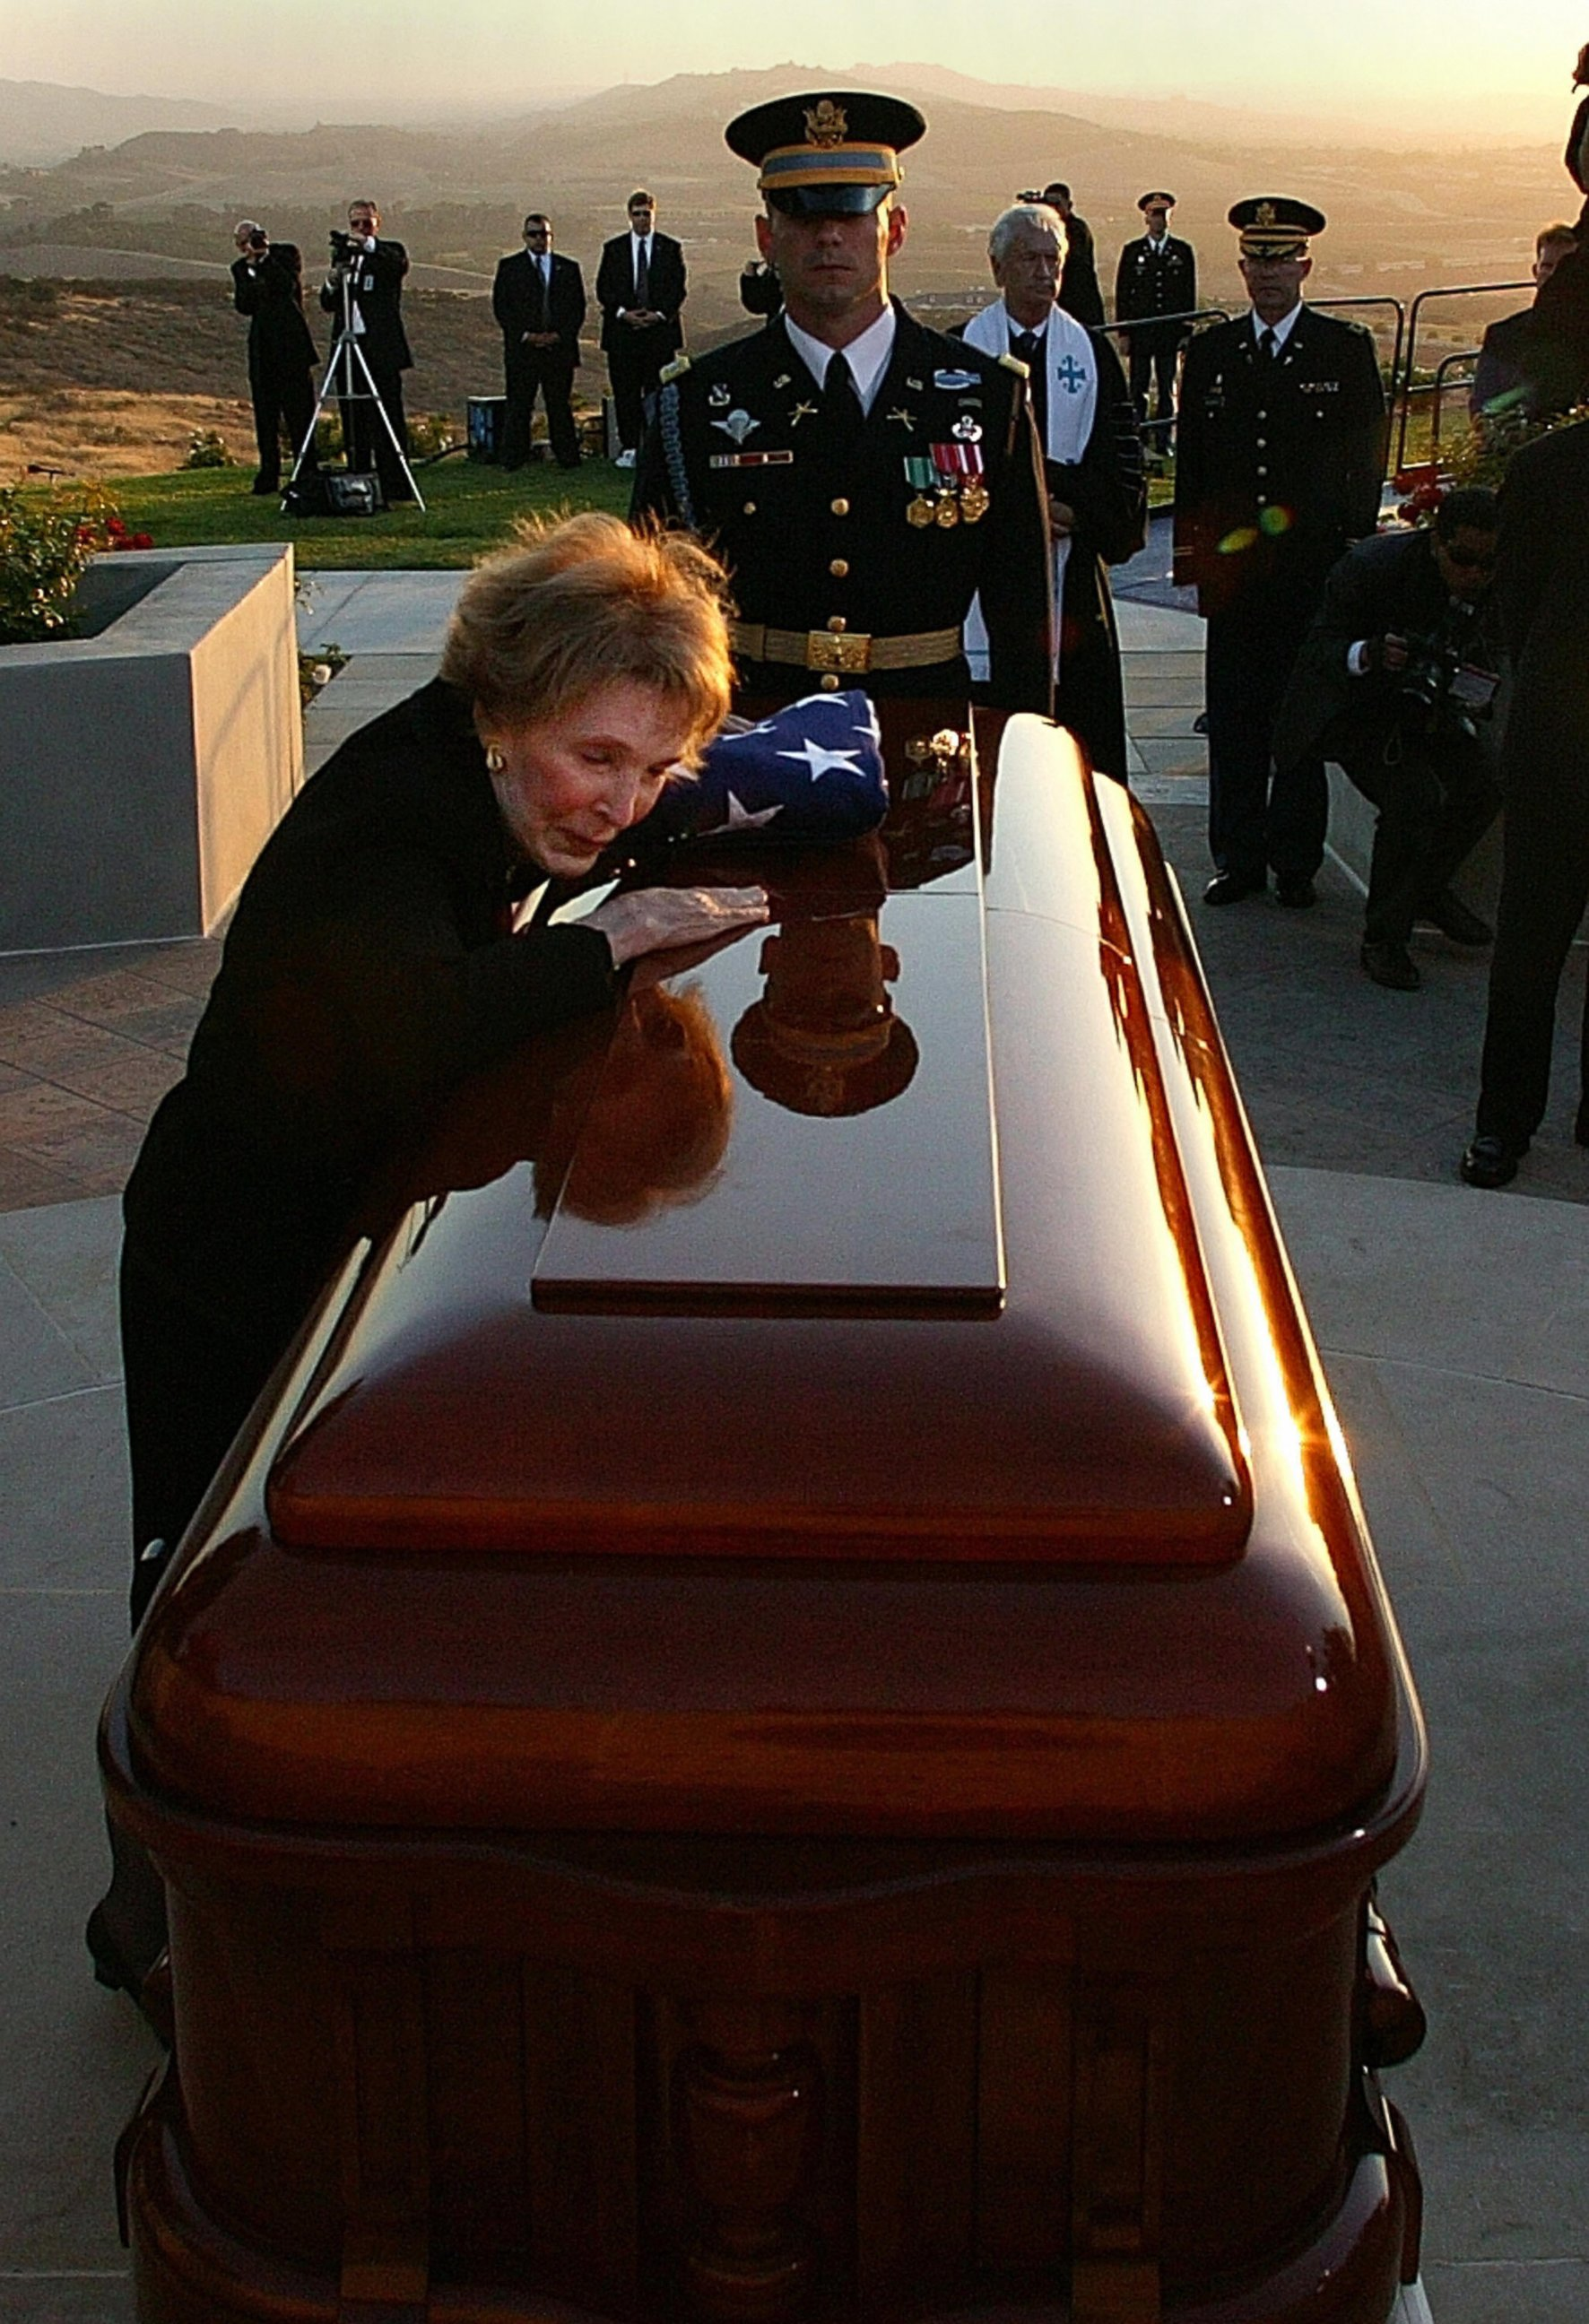 http://commons.wikipedia.org/wiki/File:Nancy_Reagan_says_final_goodbyes_to_RR_June_11%2C_2004.jpg